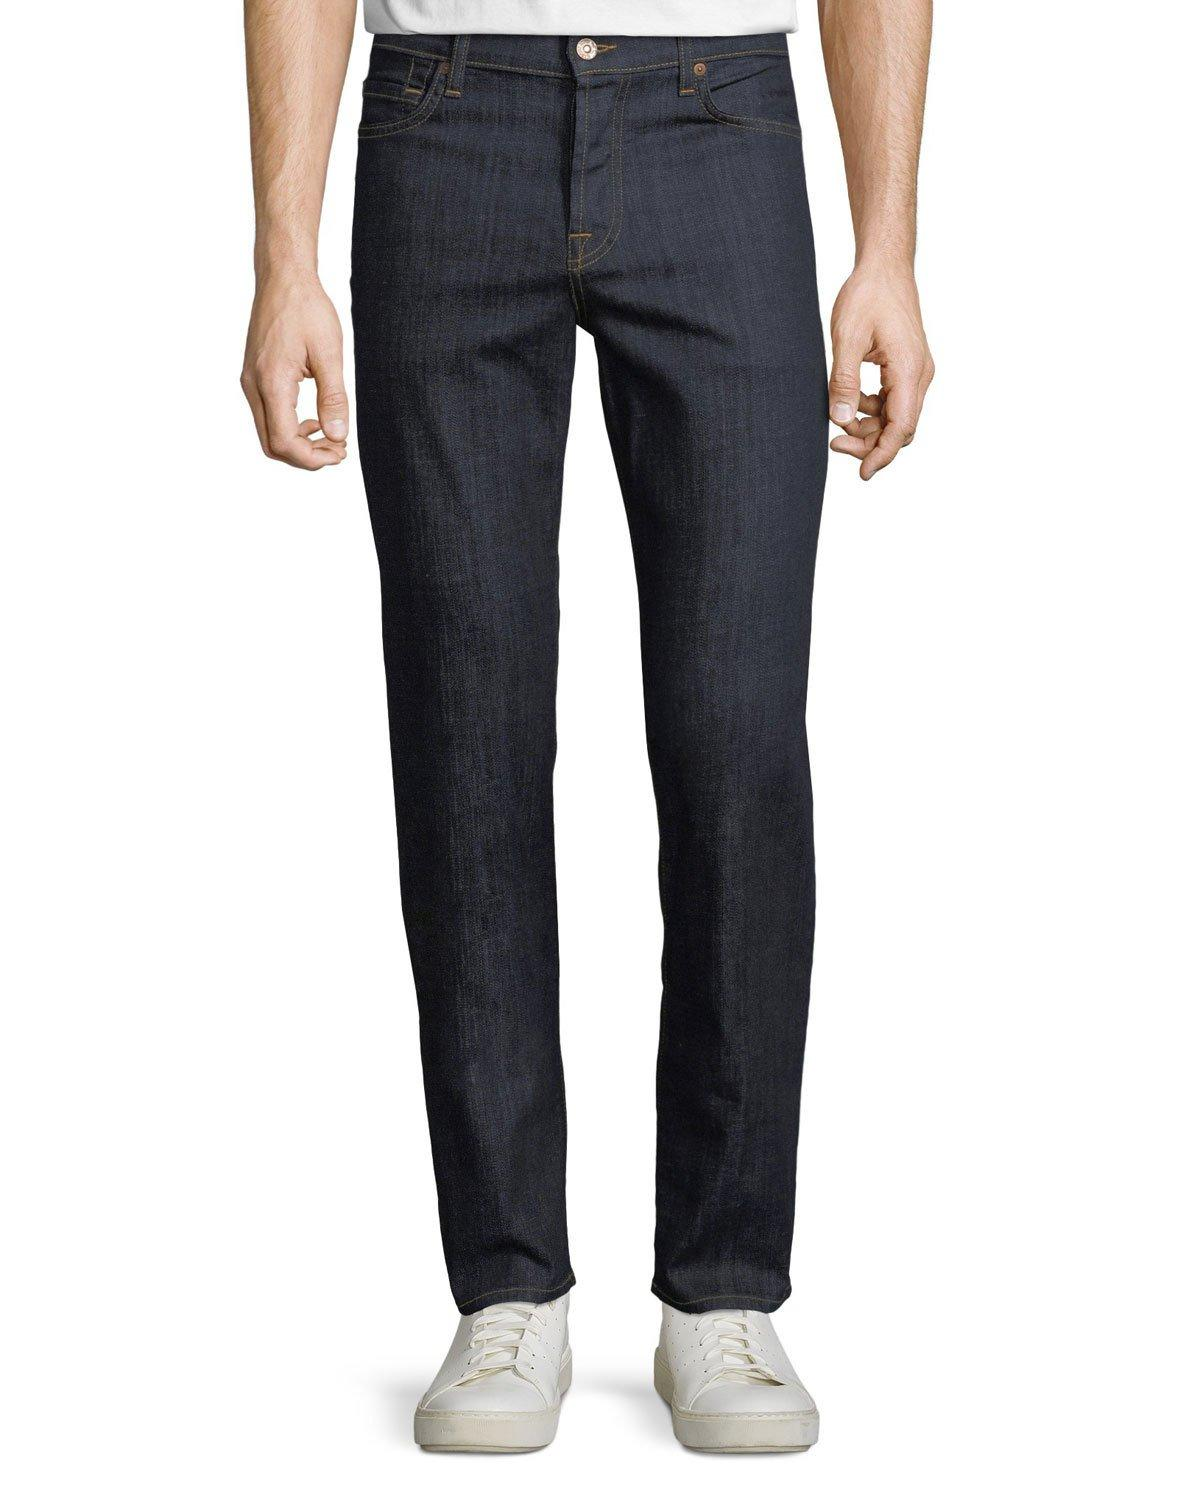 7 For All Mankind Men's Standard Comfort-stretch Straight-leg Jeans In Blue